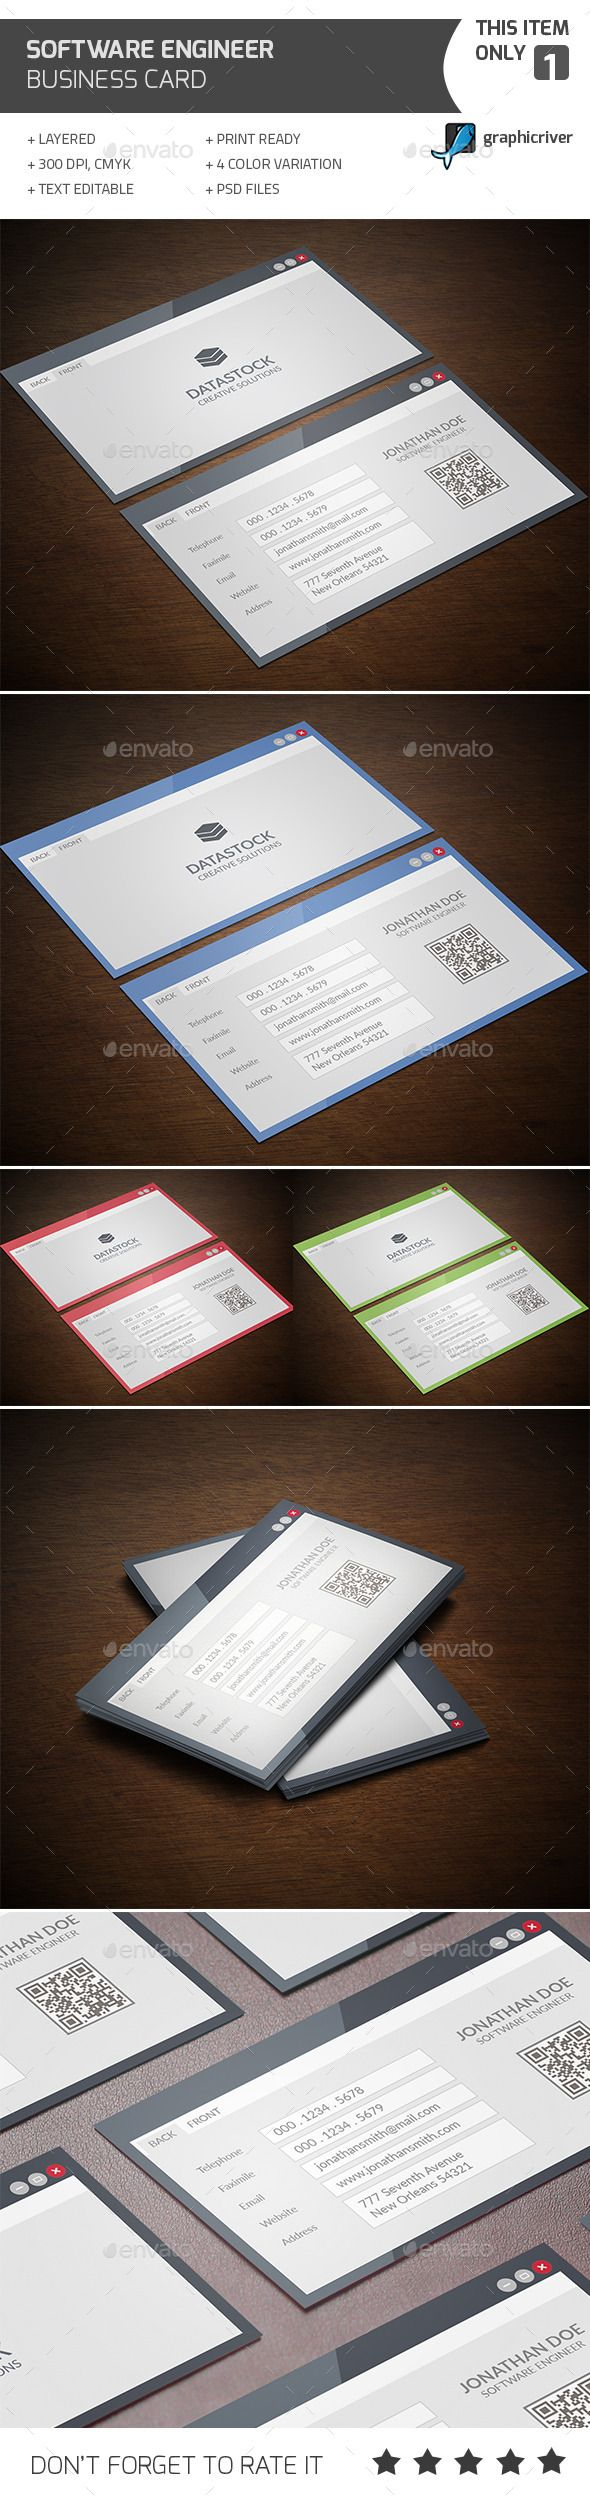 Software Engineer Business Card Design Template - Industry Specific Business Card Template PSD. Download here: https://graphicriver.net/item/software-engineer-business-card/12492240?s_rank=1790&ref=yinkira